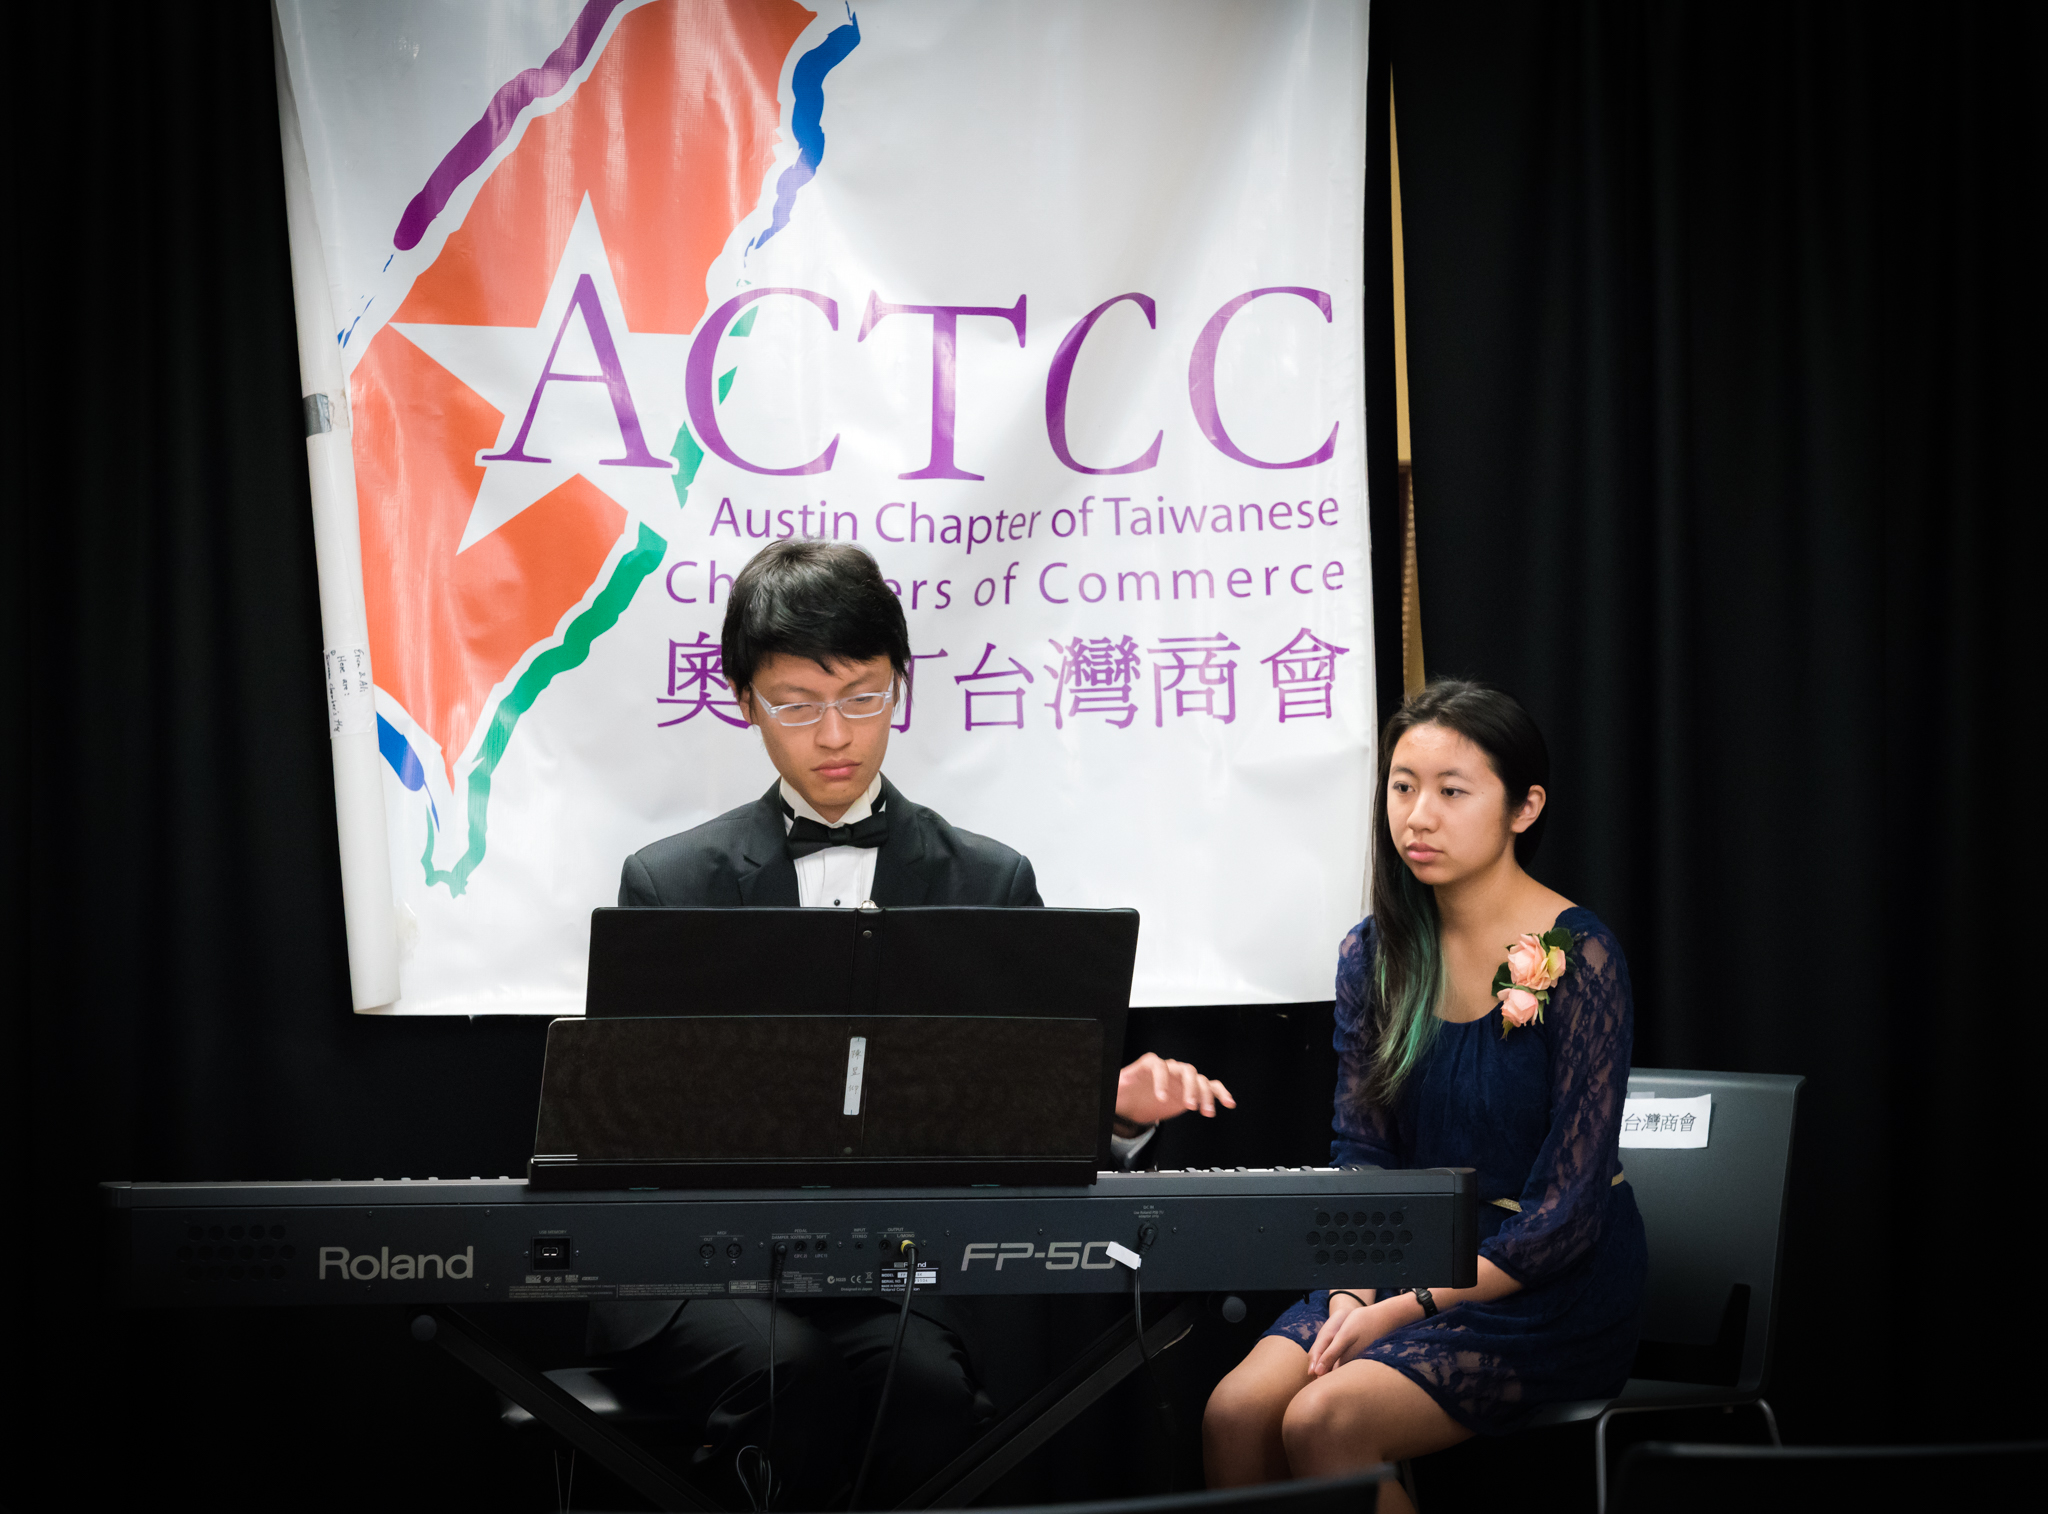 https://0201.nccdn.net/4_2/000/000/076/de9/29OCT2016---ACTCC-TW-National-Day-Celebration-at-AARC-Performance-18.JPG